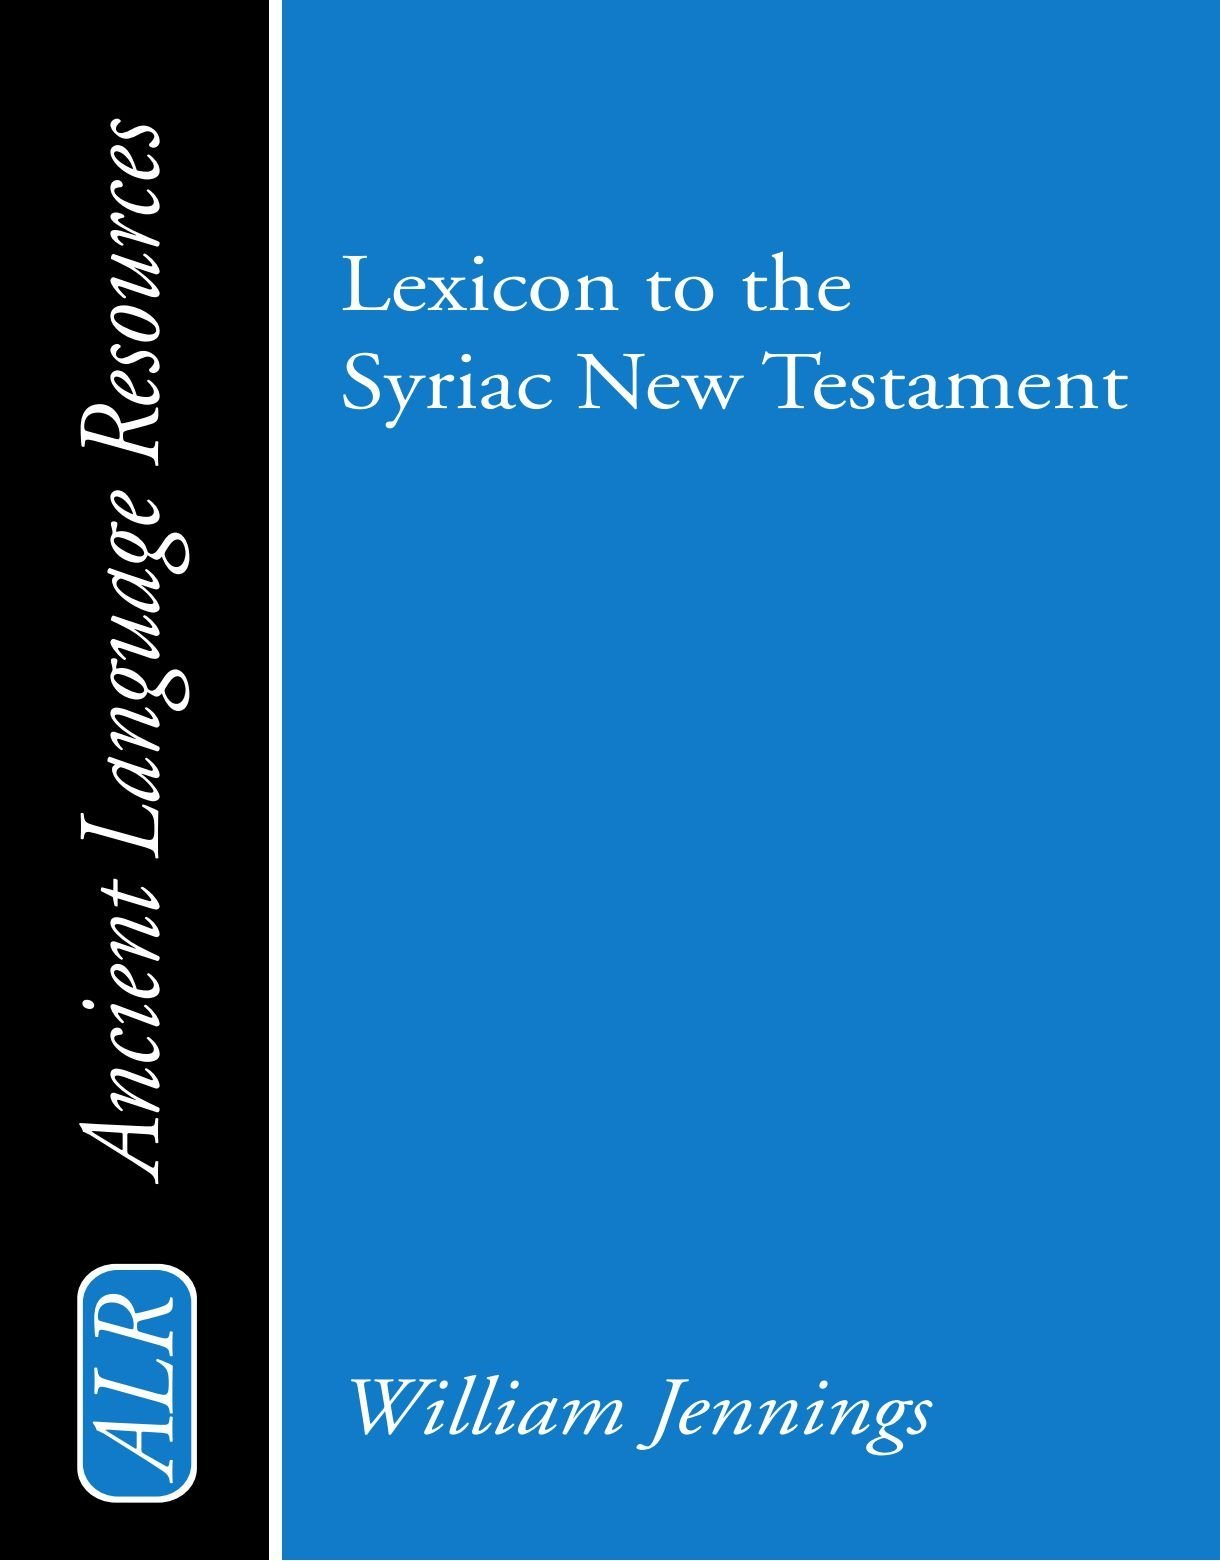 Lexicon to the Syriac New Testament: (Ancient Language Resources) (English and Syriac Edition) by Brand: Wipf Stock